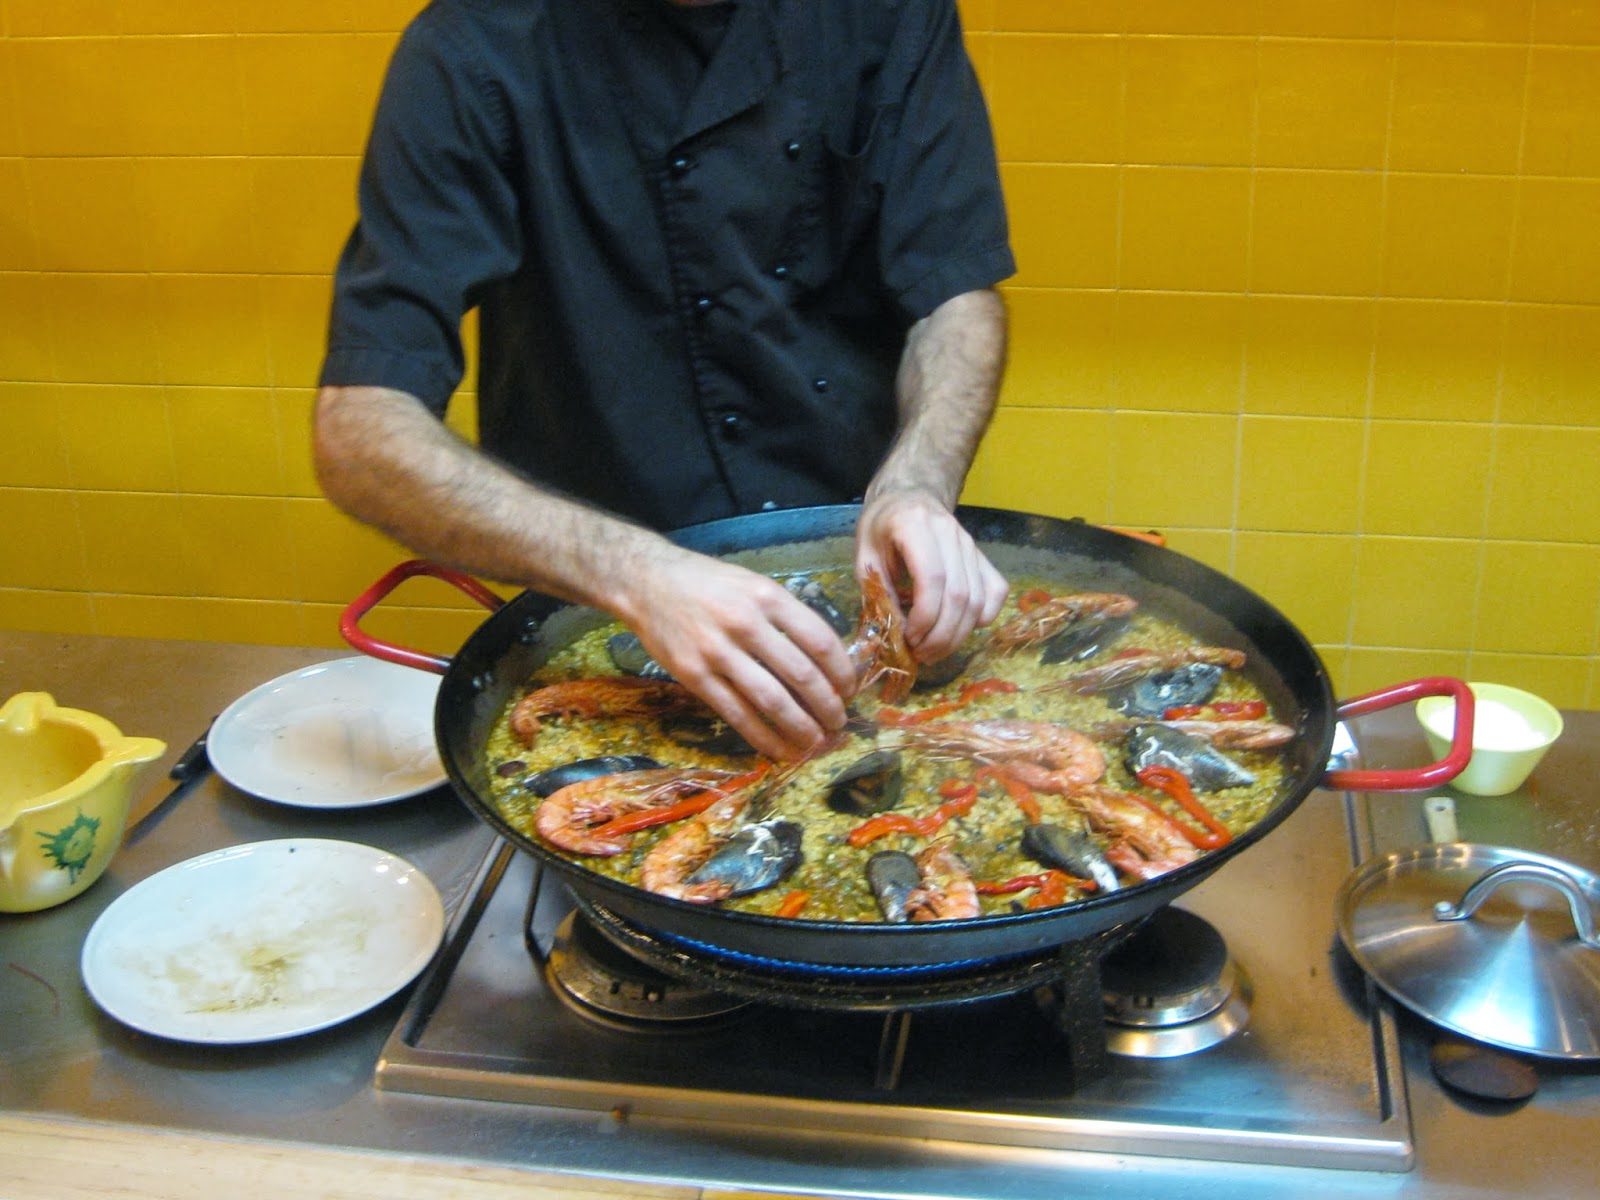 Barcelona - Making paella at Cook & Taste cooking class